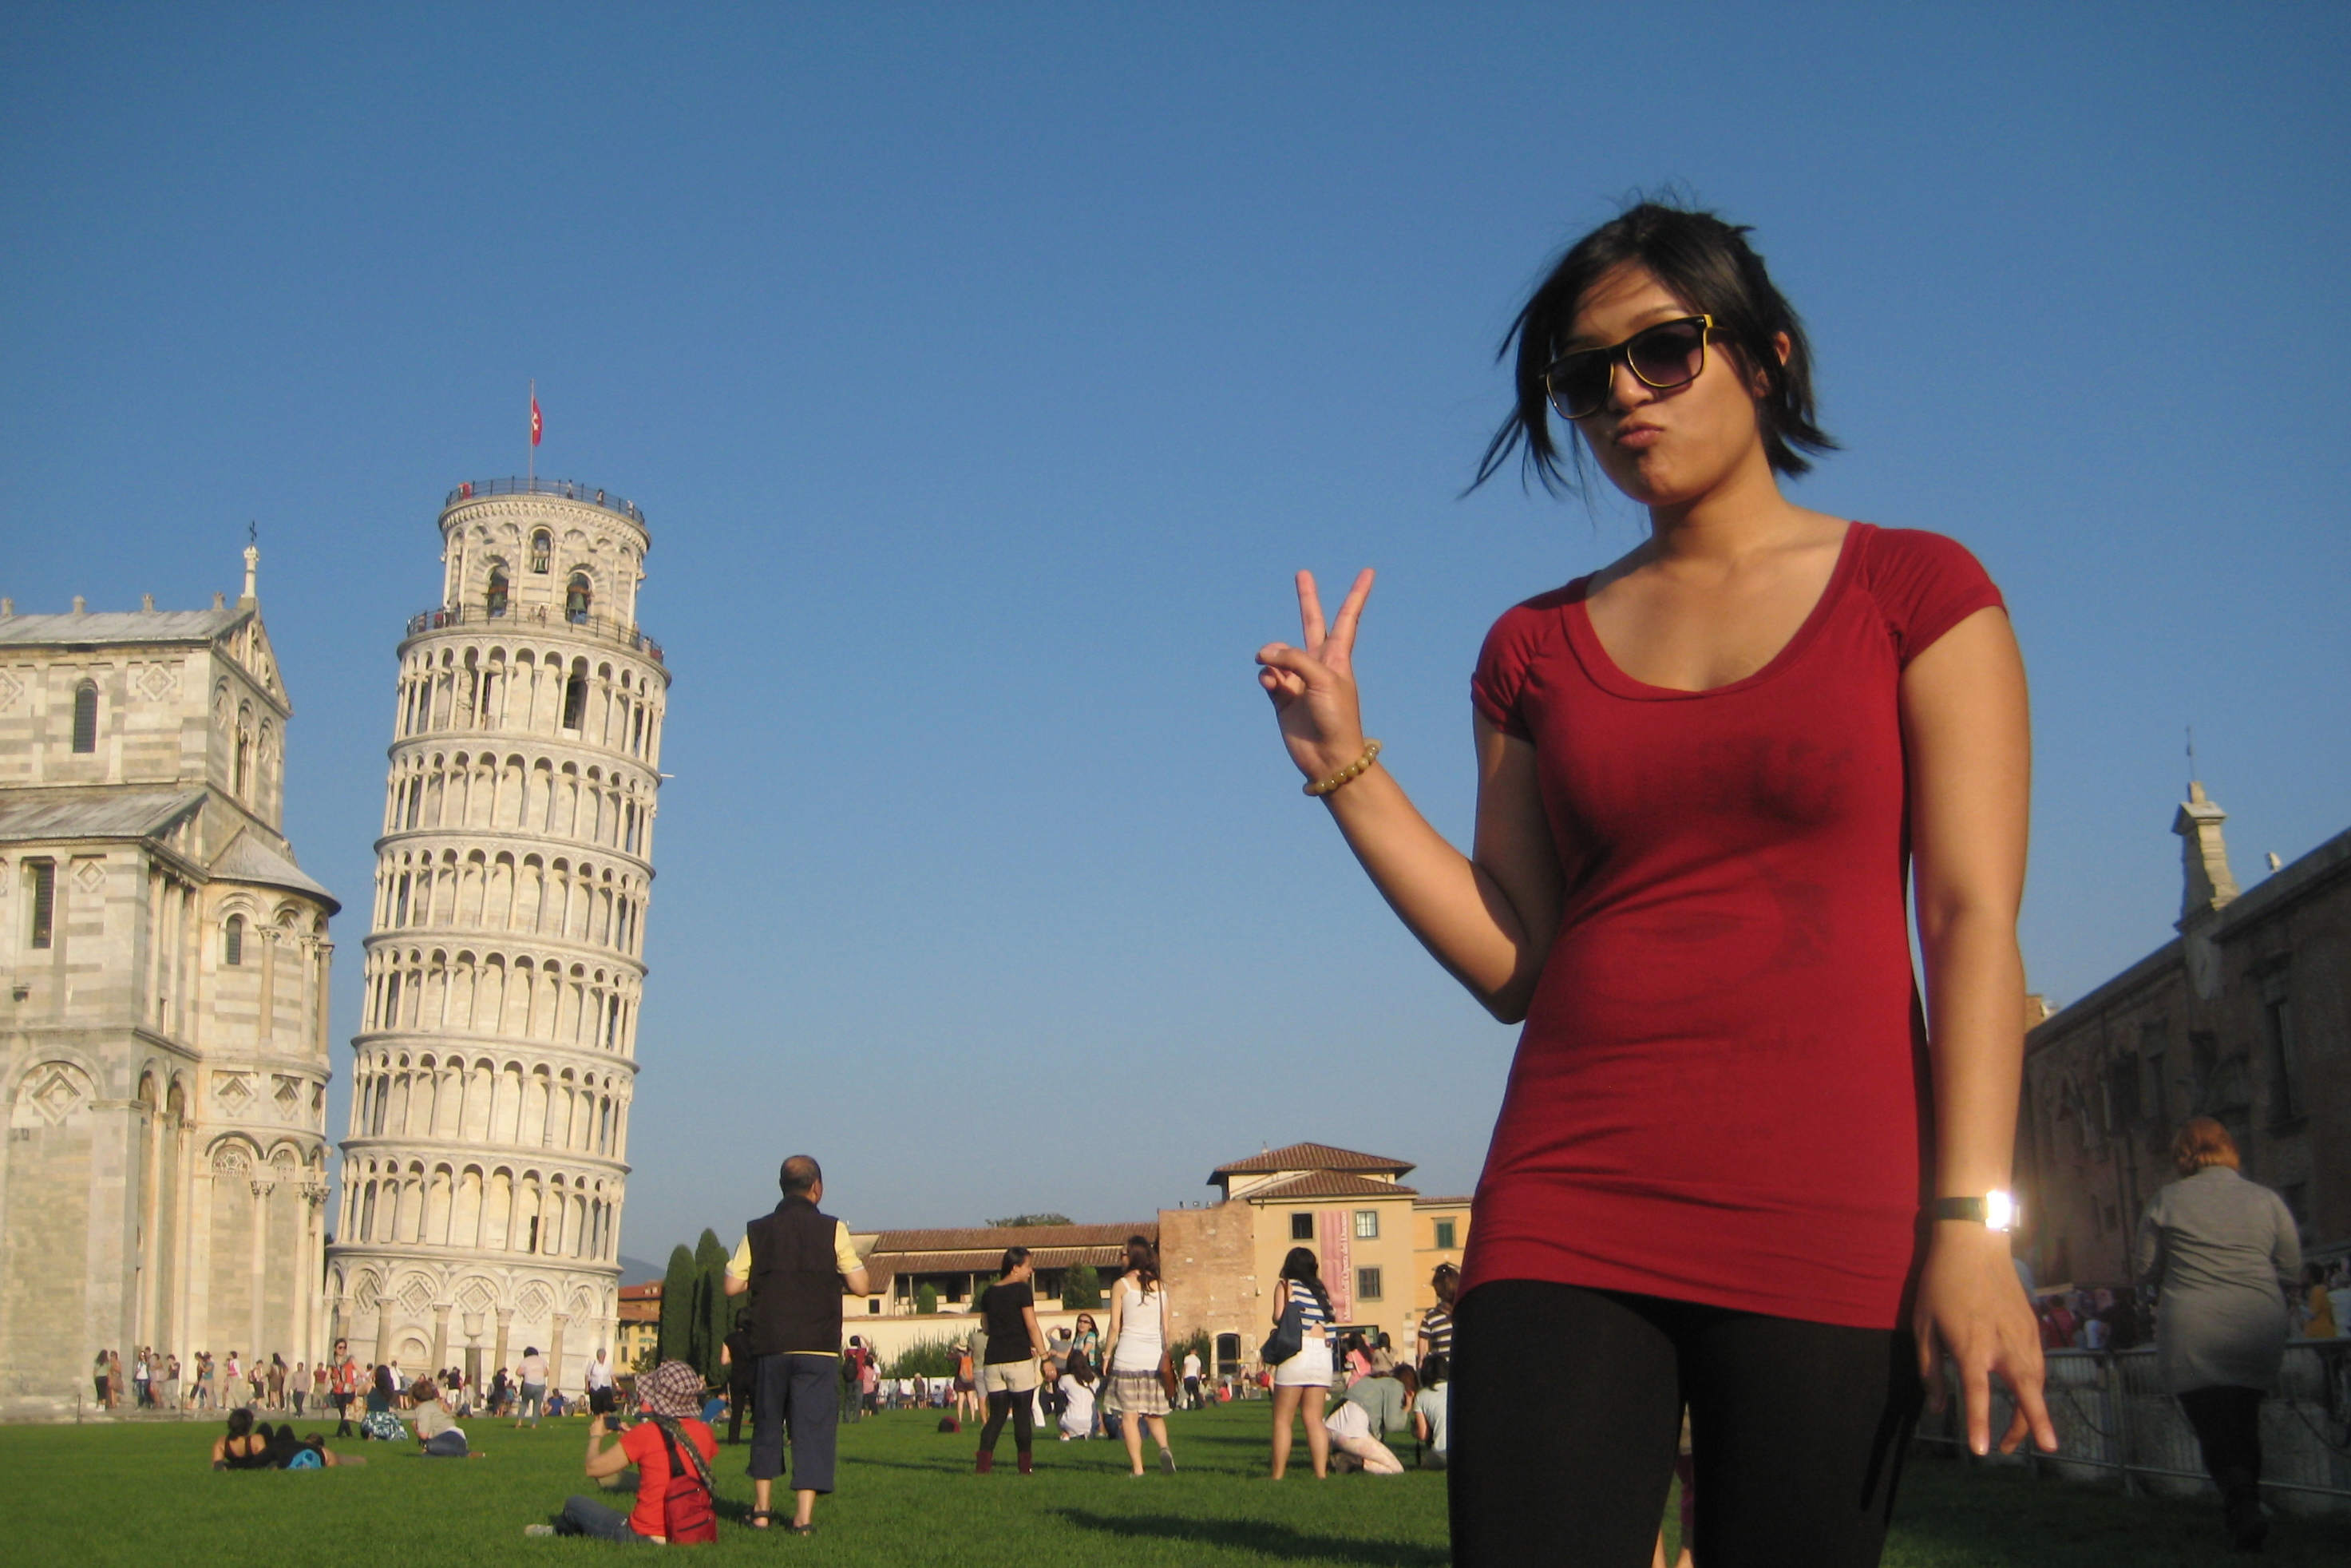 Karra posing in front of the leaning tower of pisa